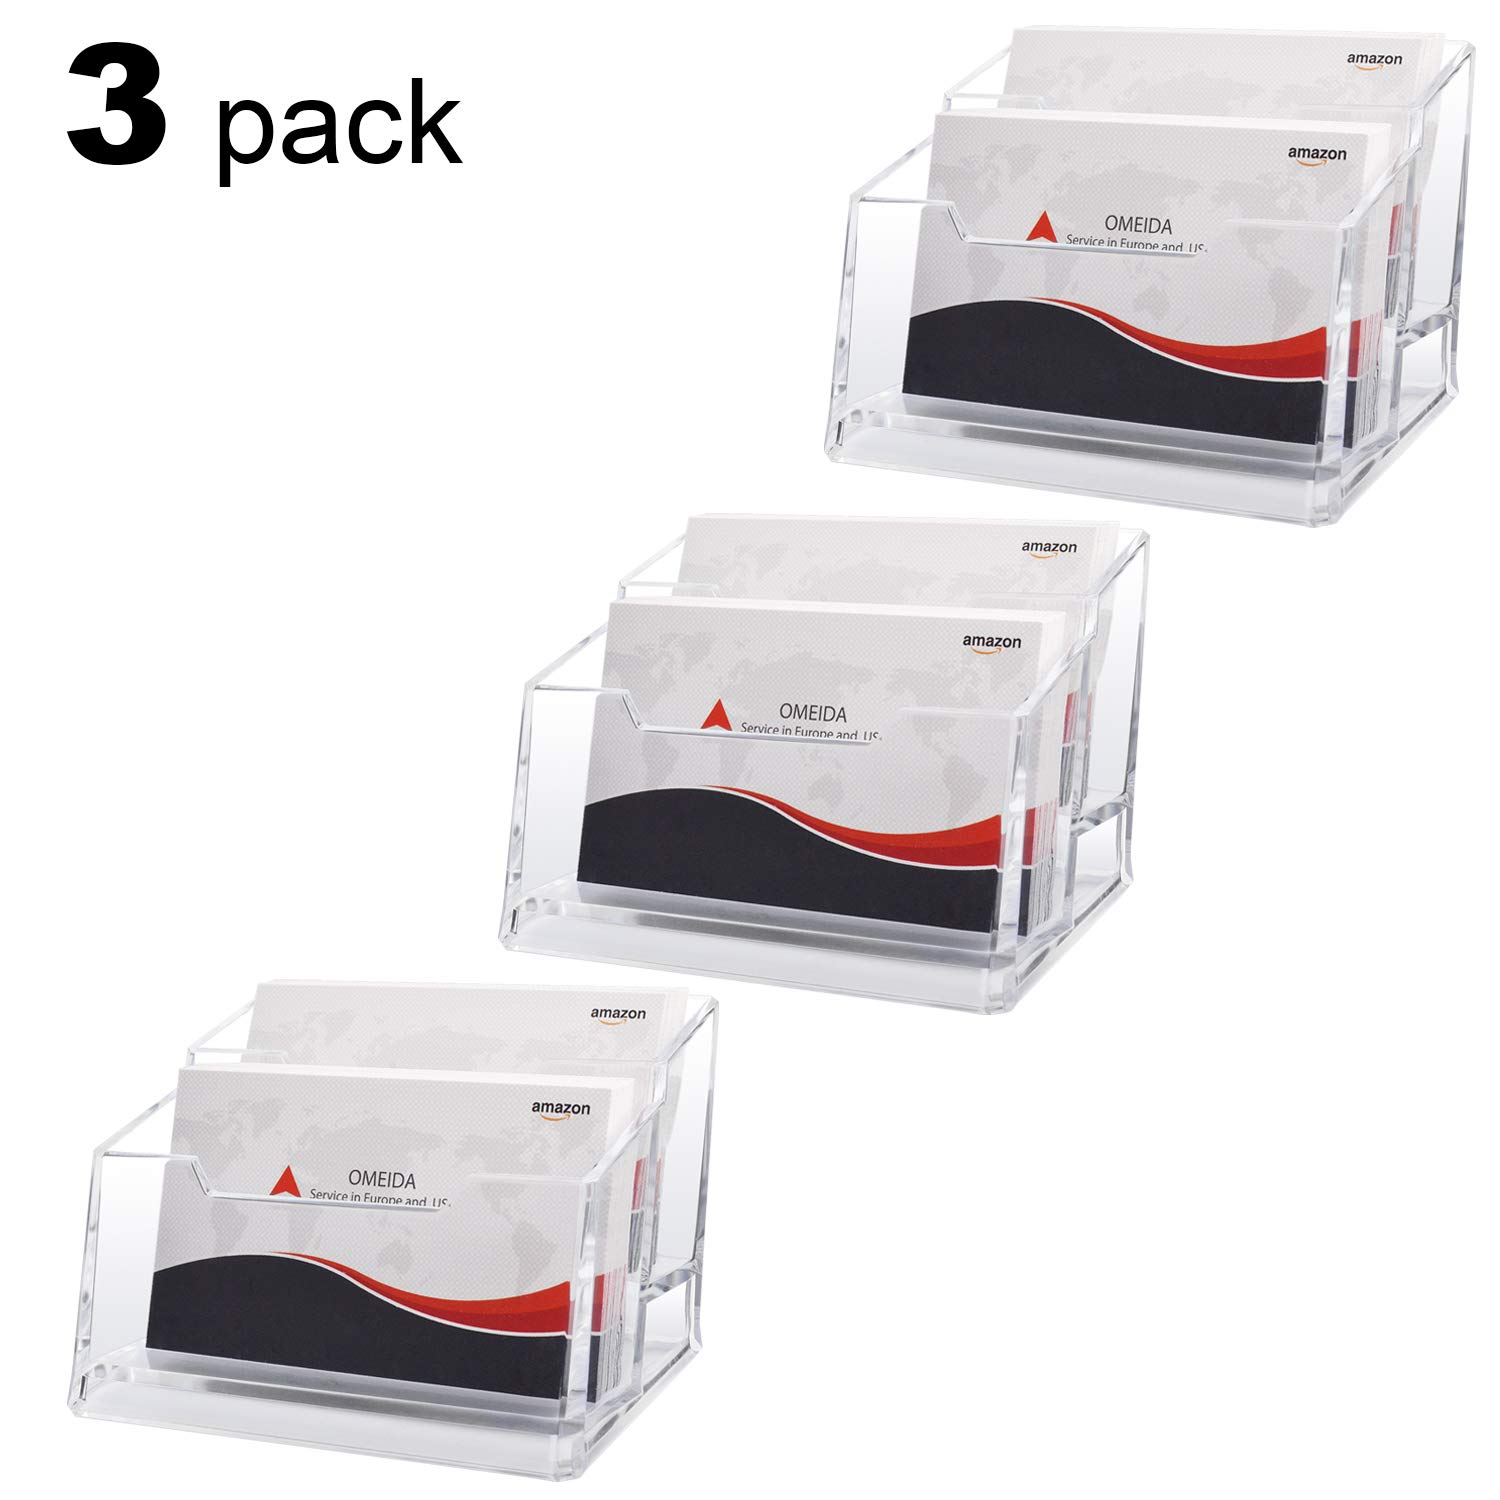 MaxGear Clear Business Card Stand Holder 2 Tier Acrylic Business Card Holder Display for Desk with 120 Card Capacity, 3 Pack